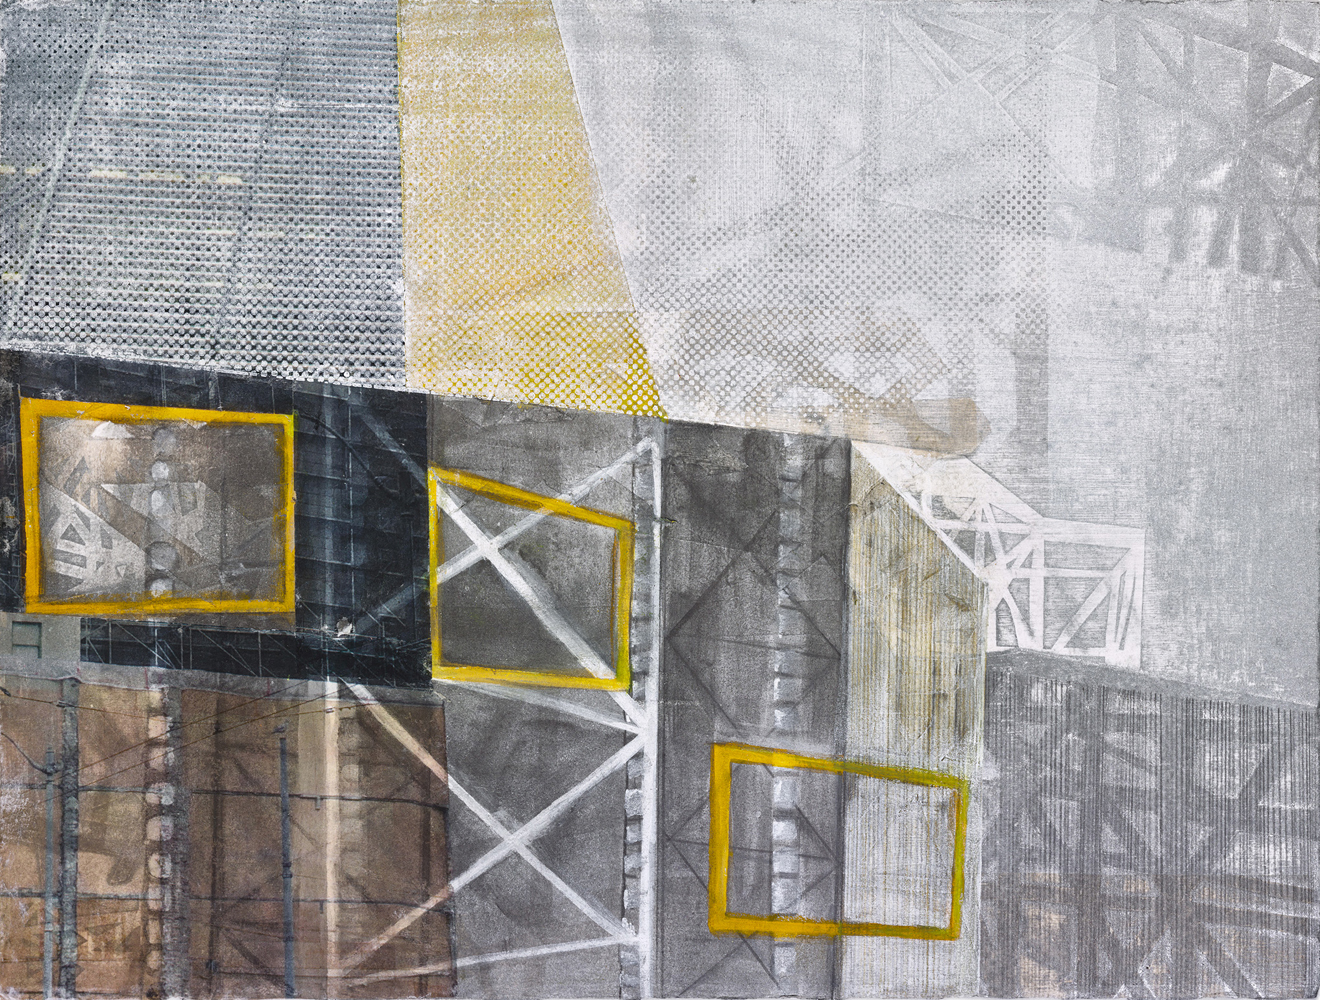 Amanda Knowles, Harbor Ave Construction, 2020, screen print, graphite, acrylic on paper, 11 x 15 inches, $600.